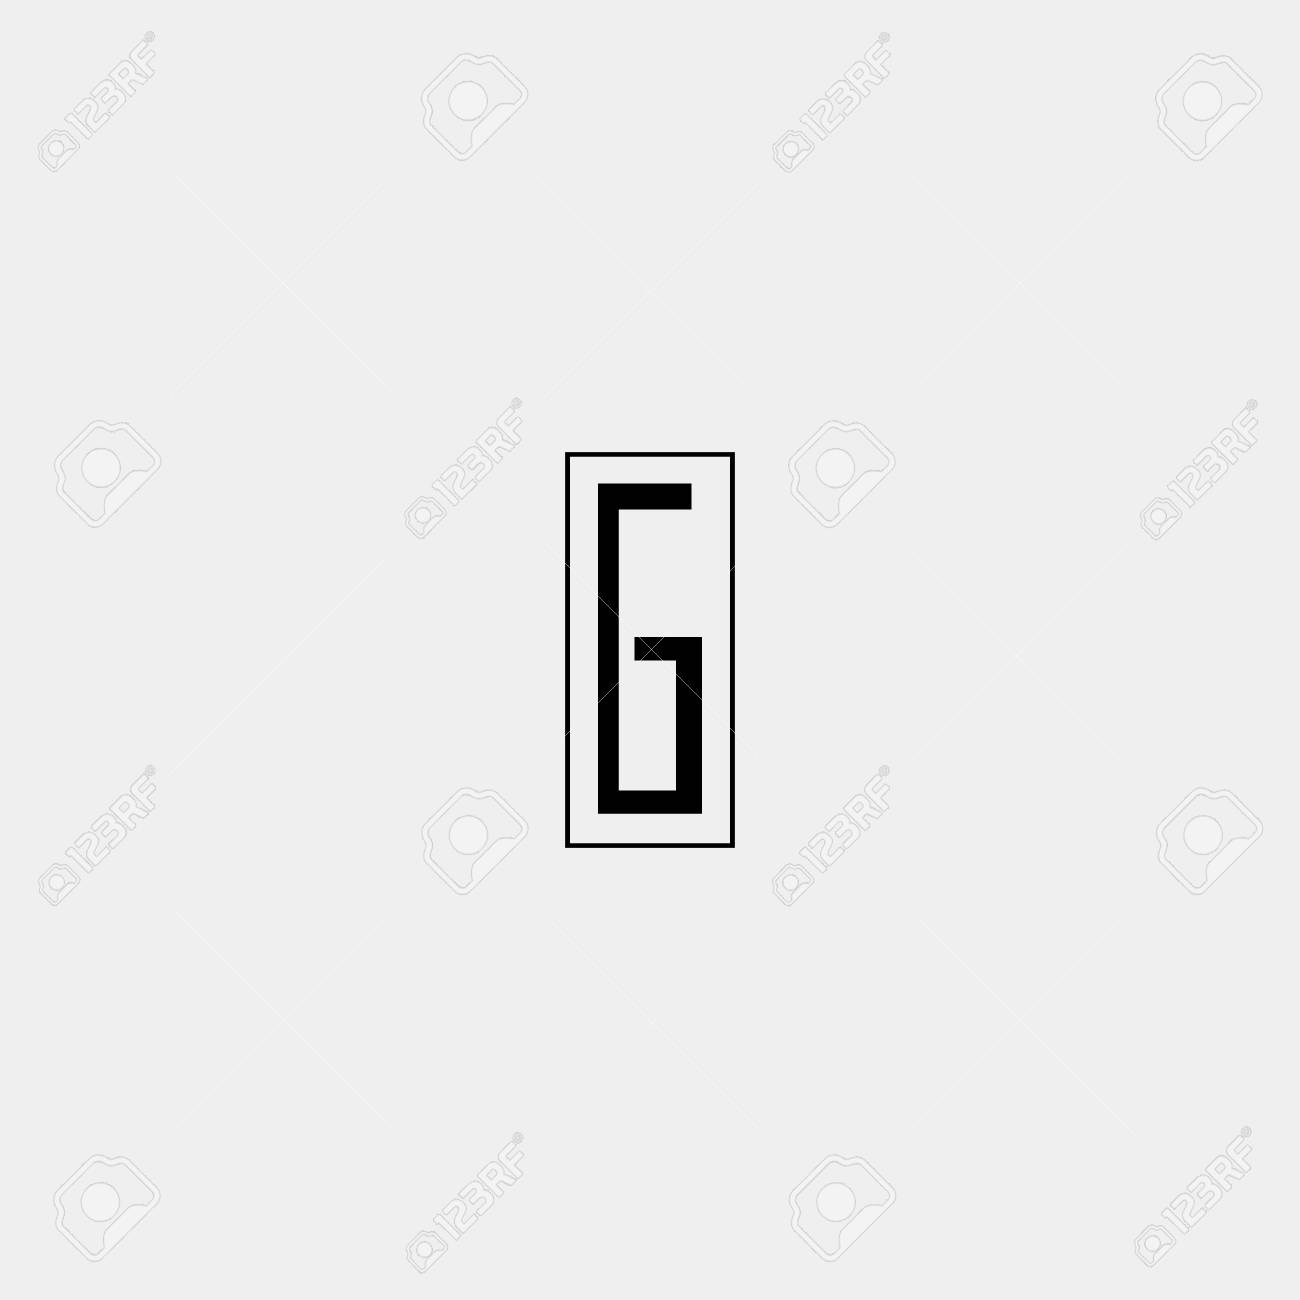 Letter G Icon Design Template Elements Black And White Minimalistic